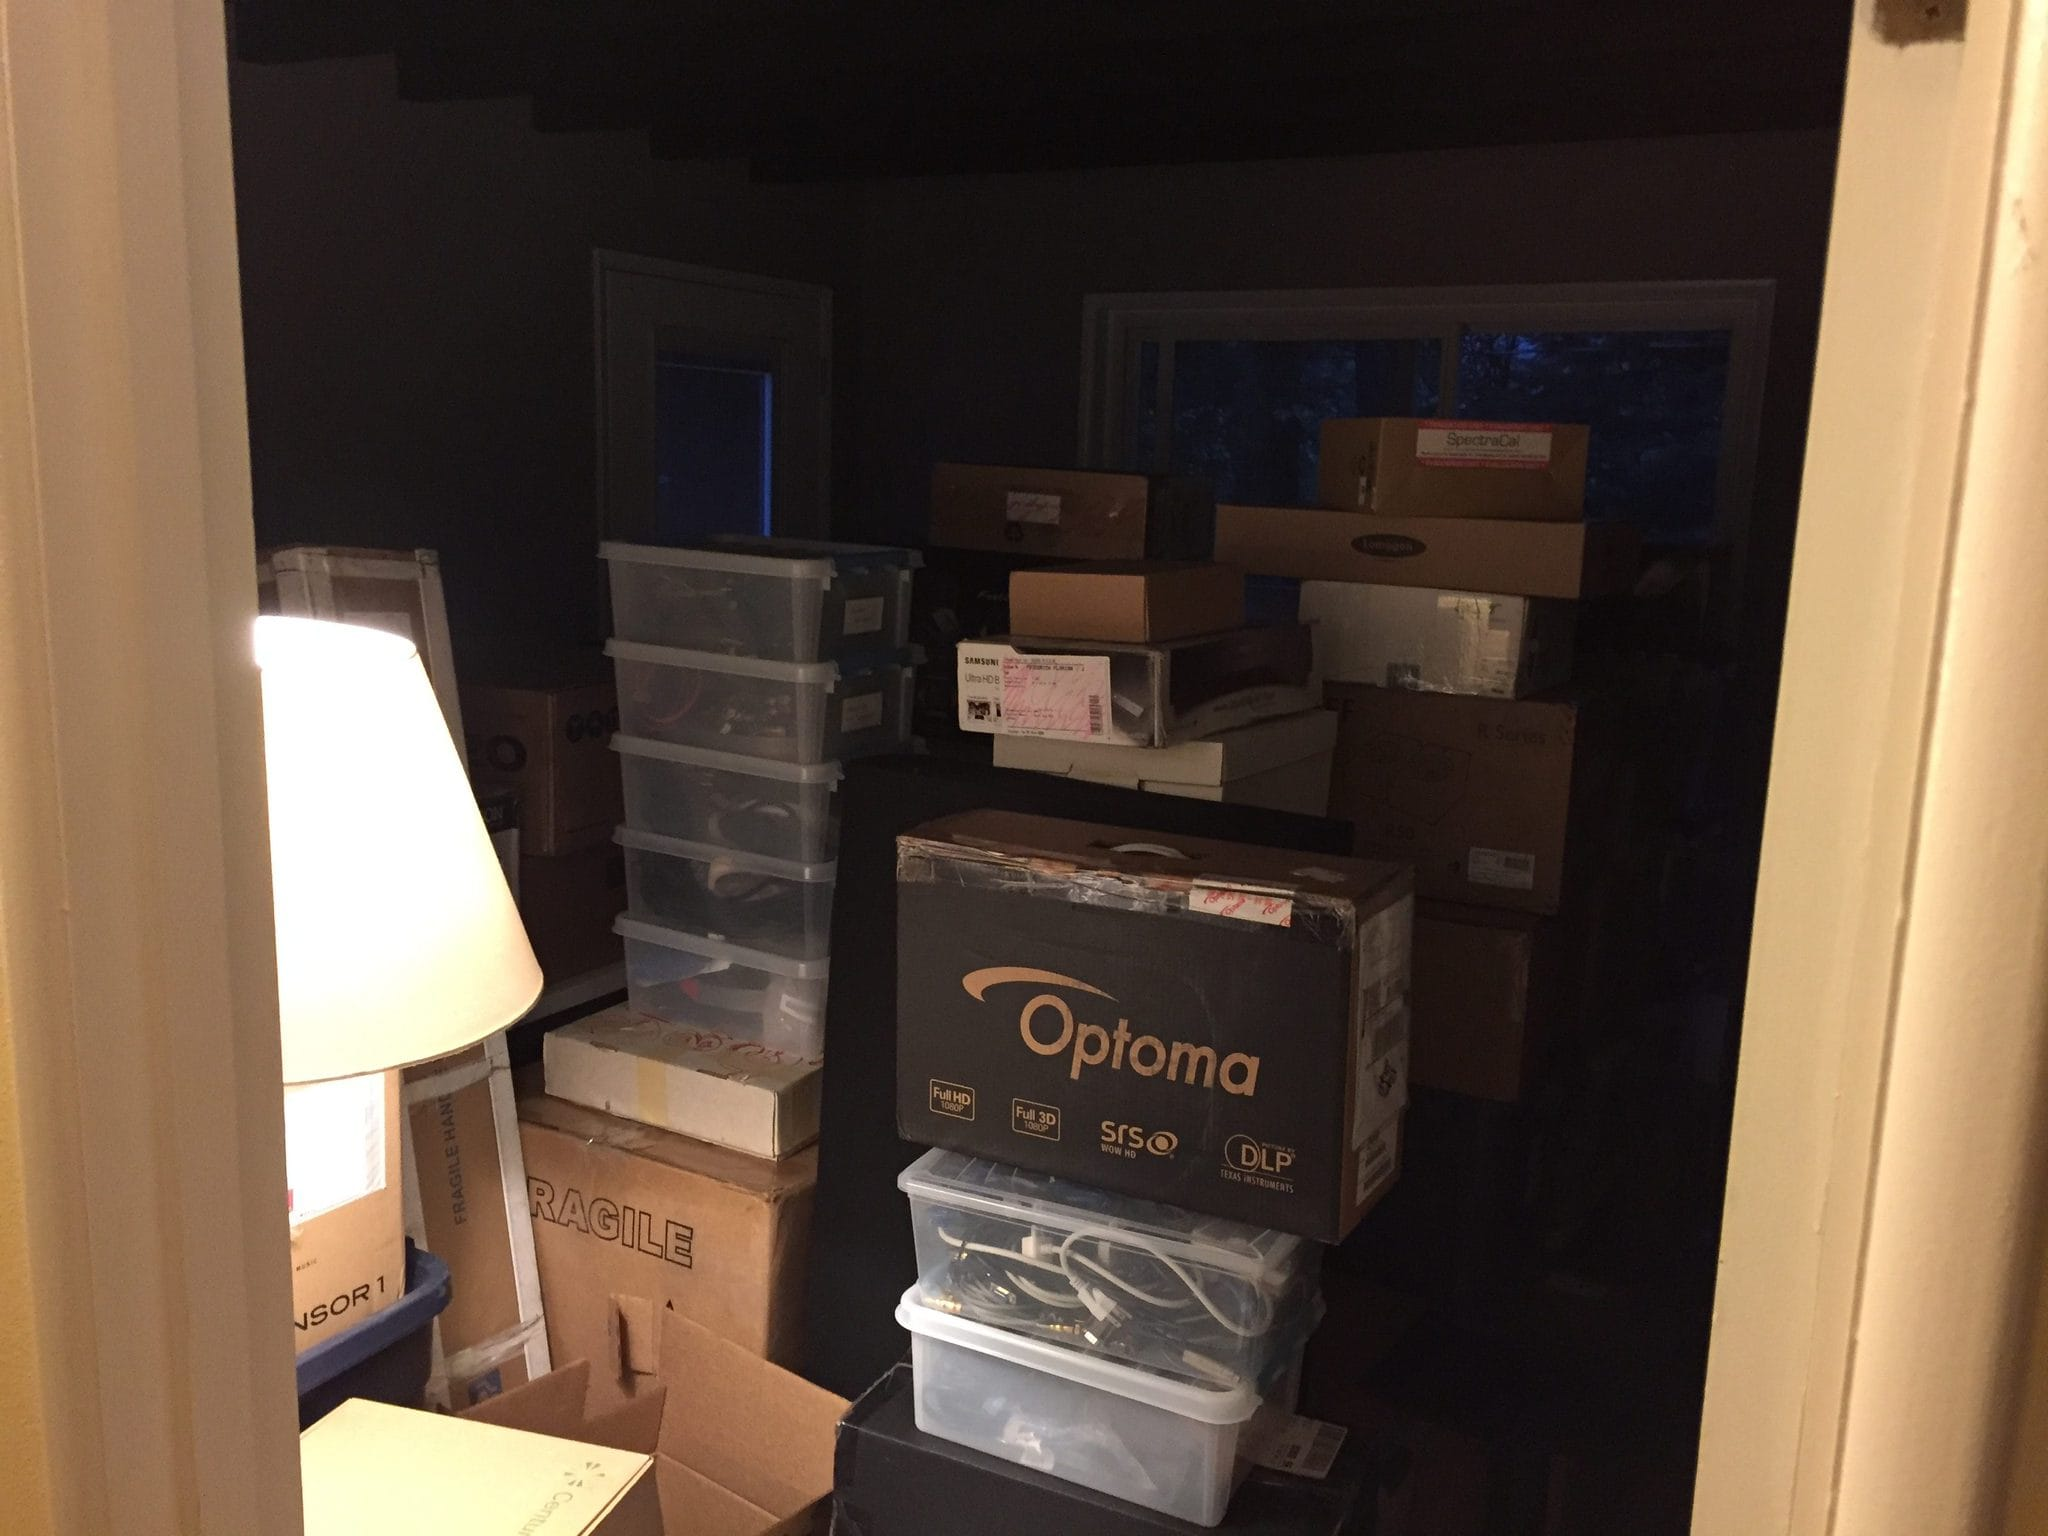 All the gear, boxed up, and no open space